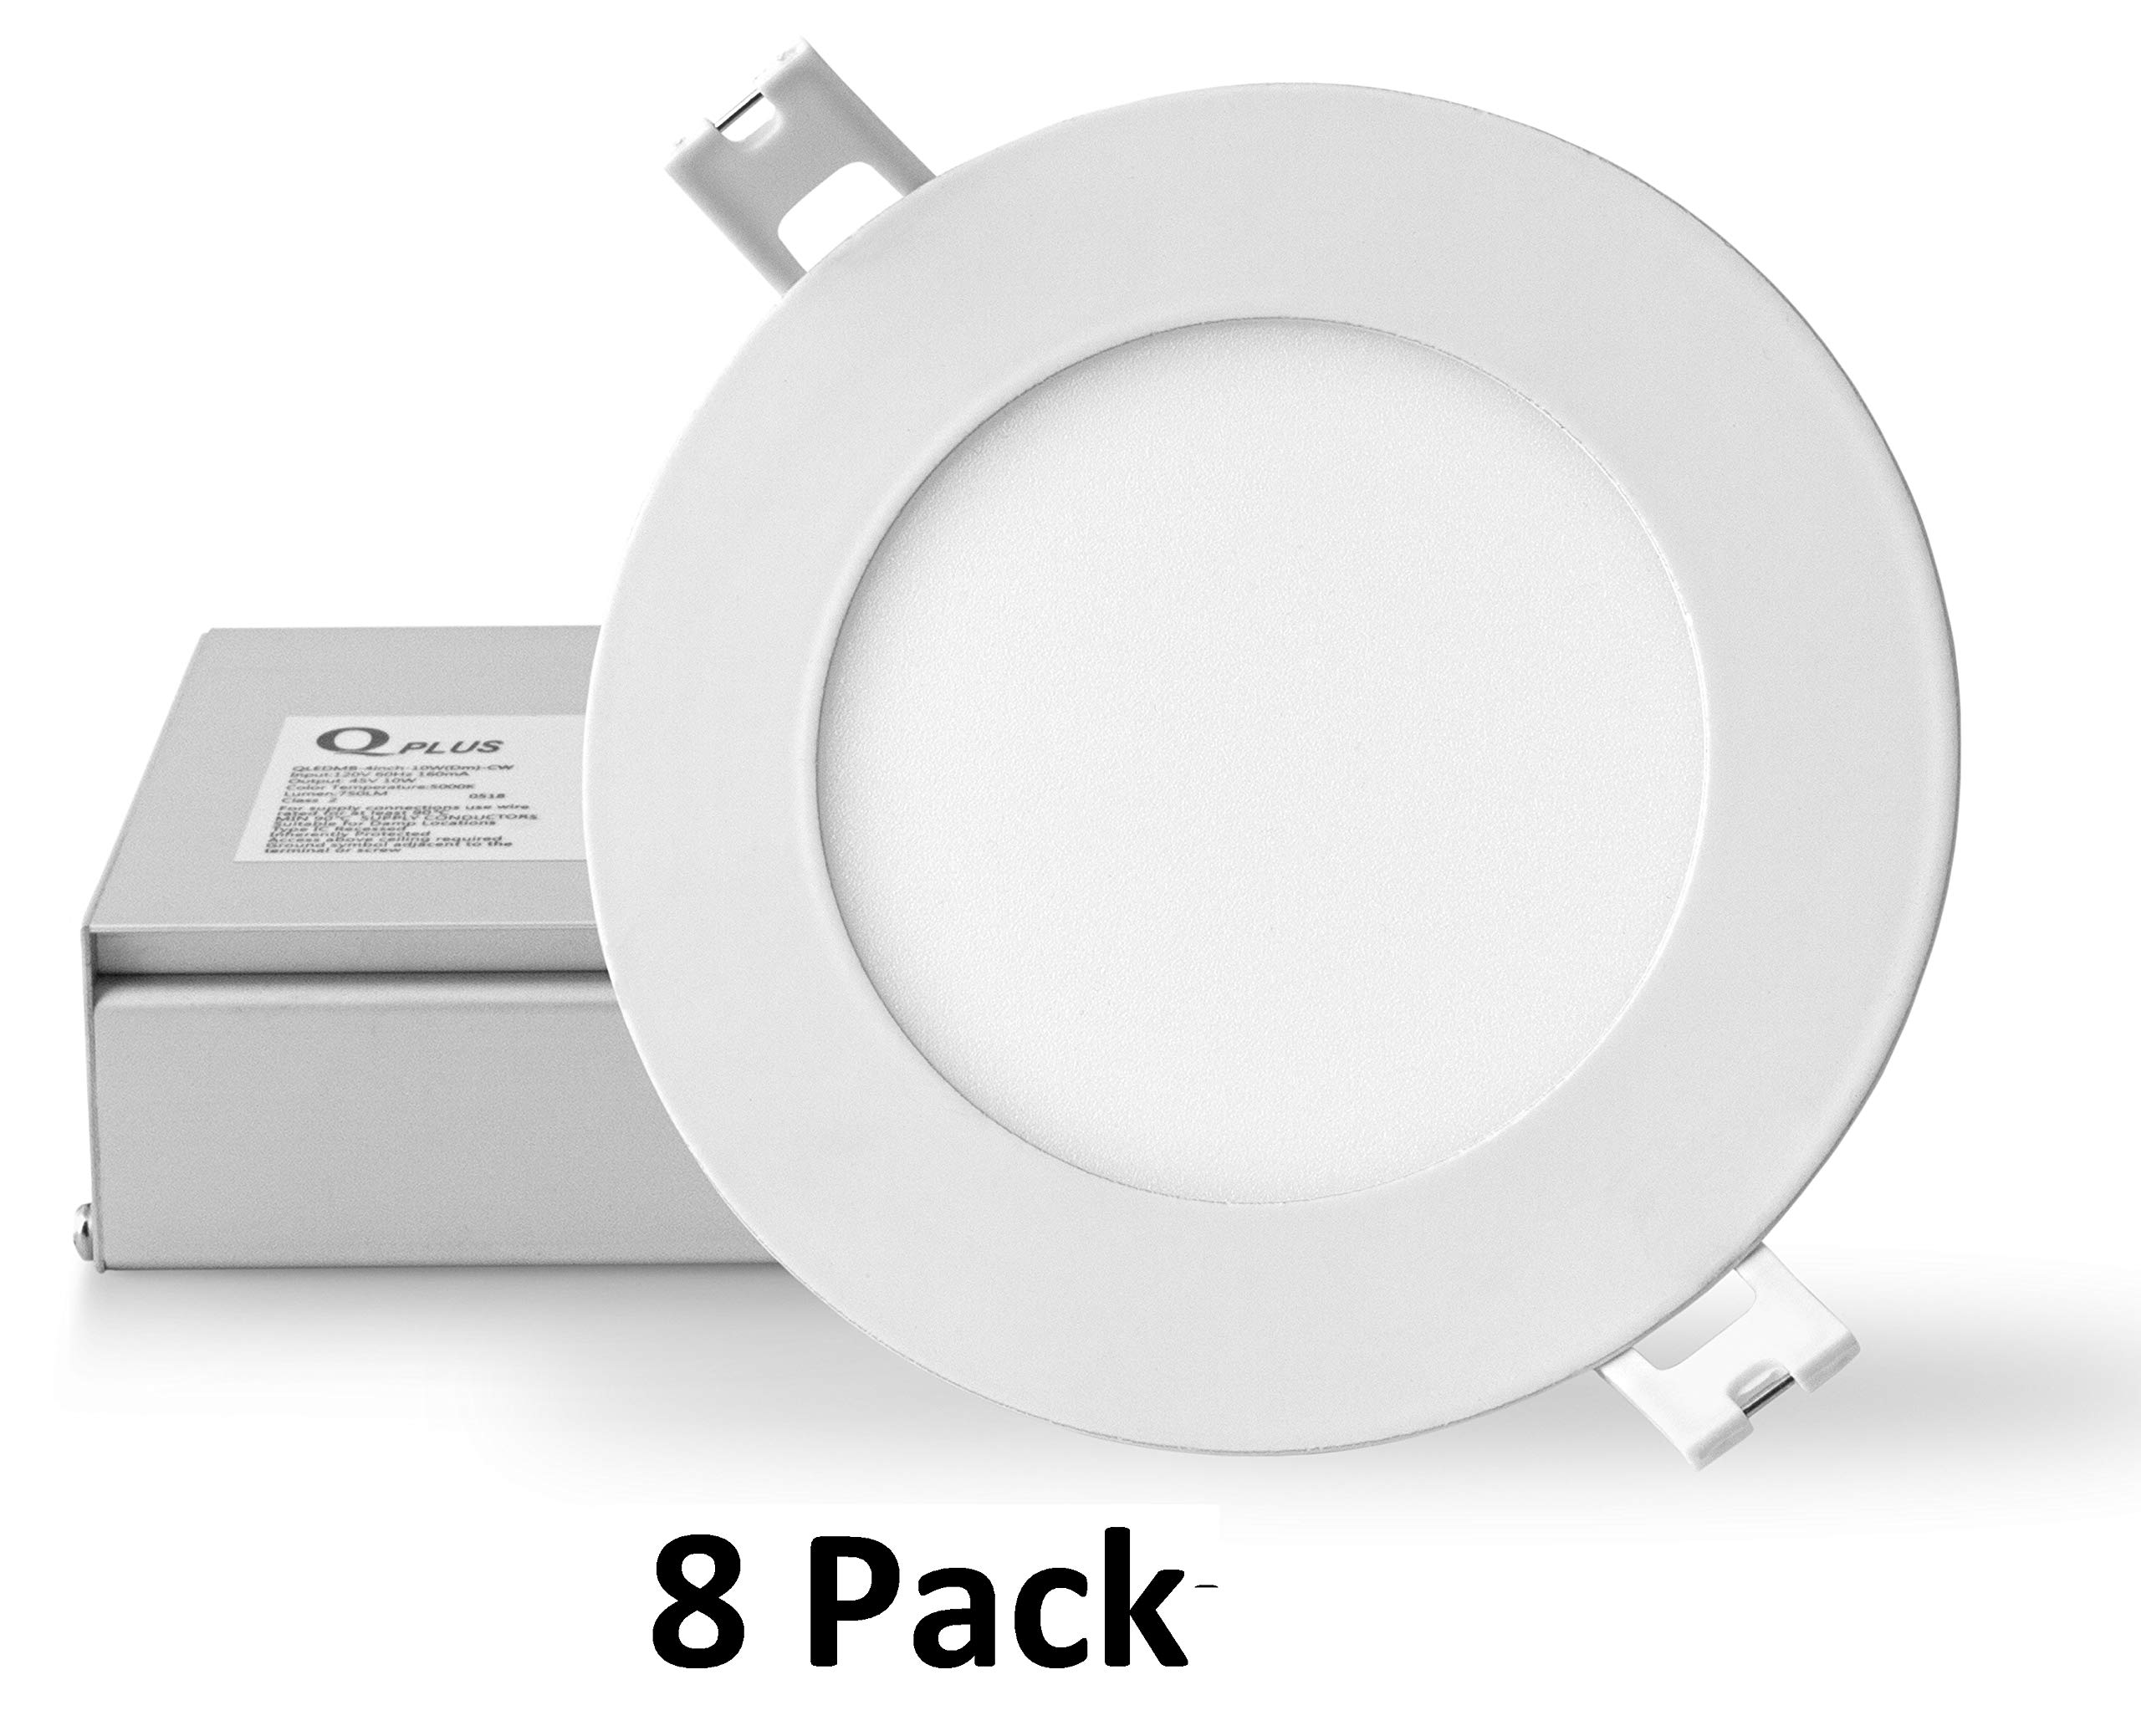 QPLUS 4 Inch LED Recessed Lighting, Ultra Thin Canless Downlight Kit with Junction Box, Dimmable, 10W (Equiv 75W), 750 lm, Energy Star + ETL, IC Rated, Damp Location (5000K Day Light, 8 Pack)